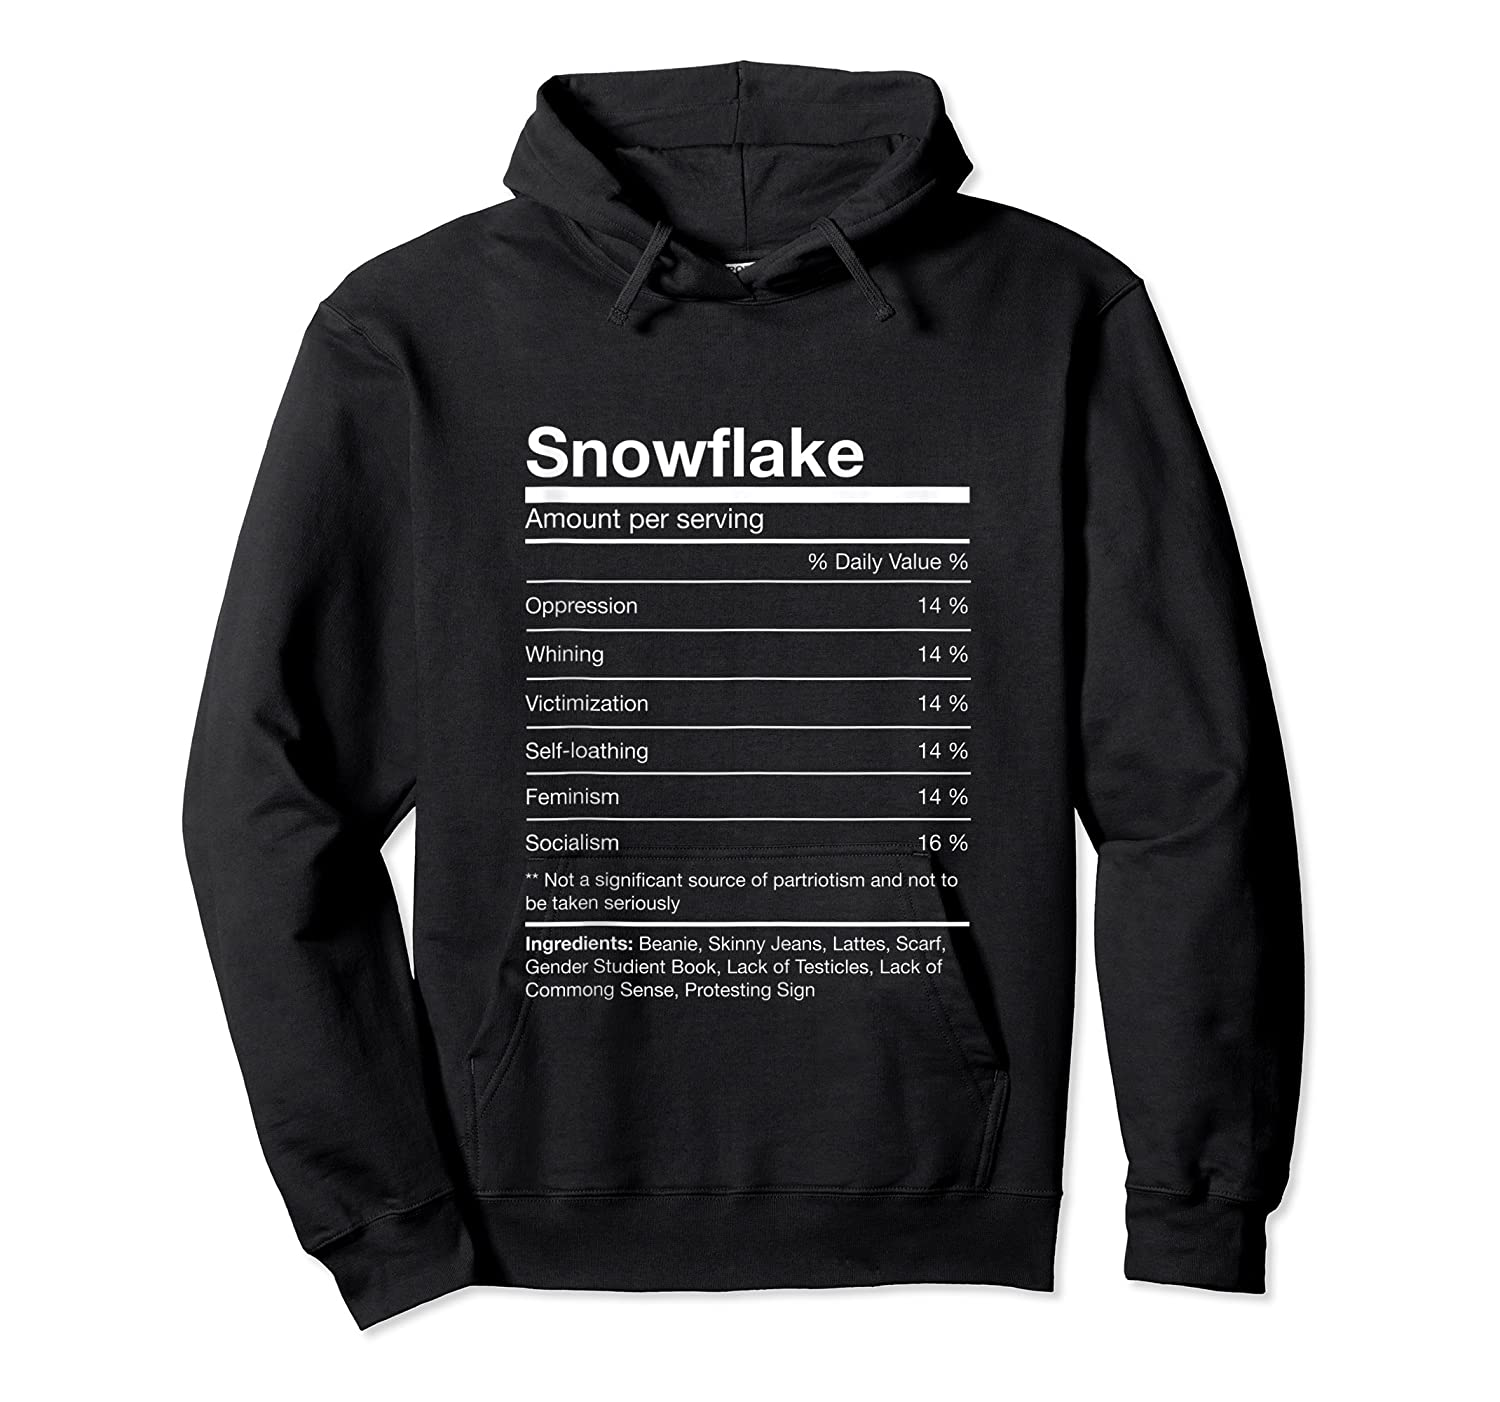 Funny Snowflake Nutrition Facts Family Christmas Parody Tank Top Shirts Unisex Pullover Hoodie